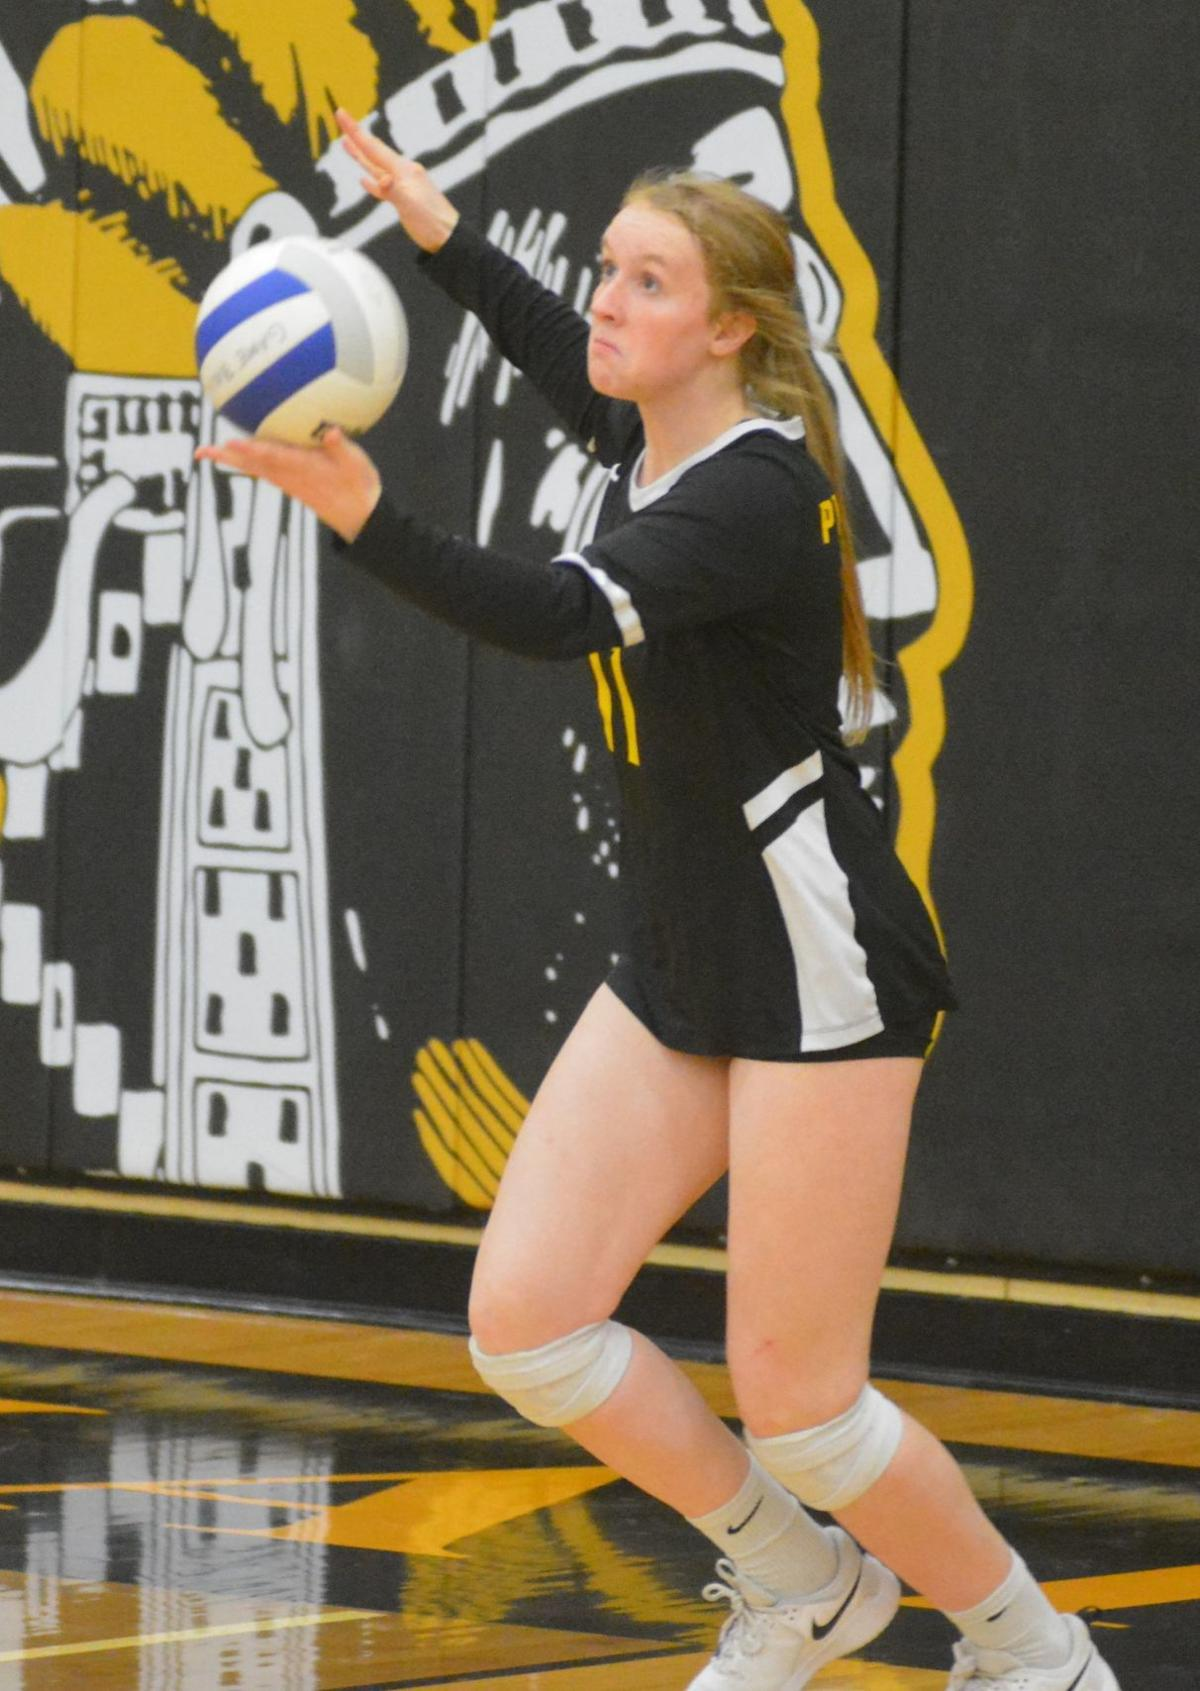 PHS volleyball: Laura Noble